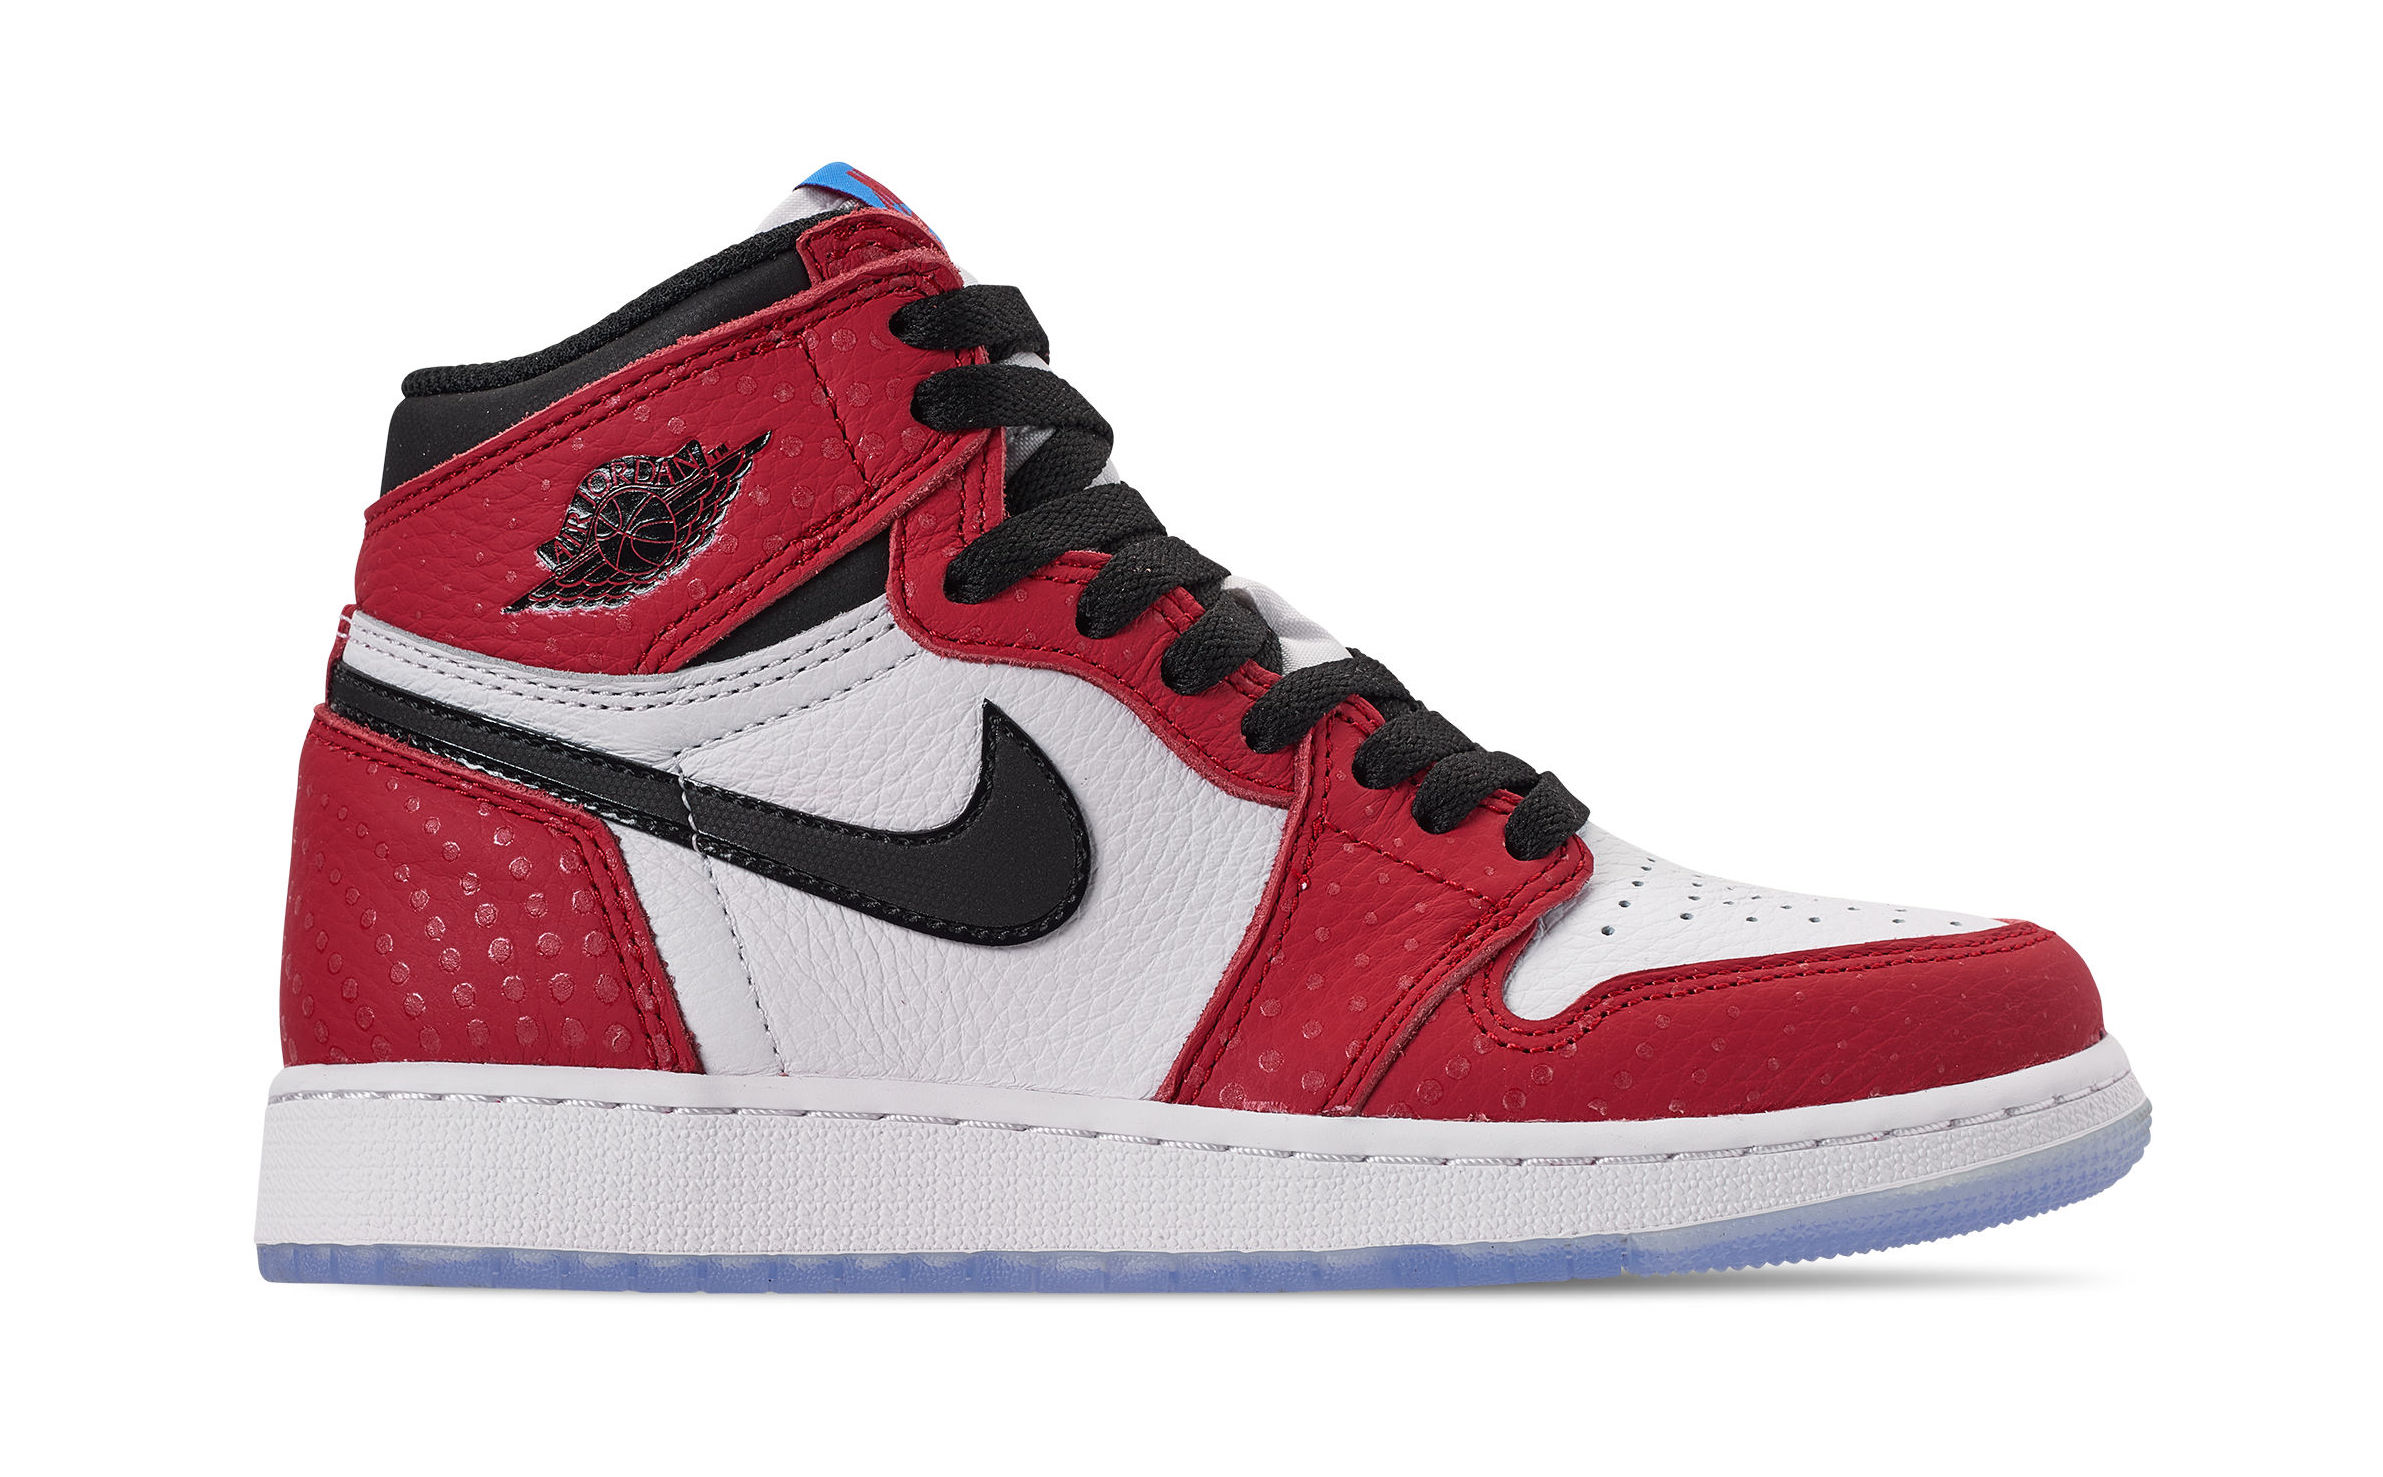 new arrival a6a0c 32dd2 You can pick up the Air Jordan 1 Retro High OG Origin Story (Into the  Spider-Verse) for  160 in adult and grade school sizes at select Jordan  Brand ...